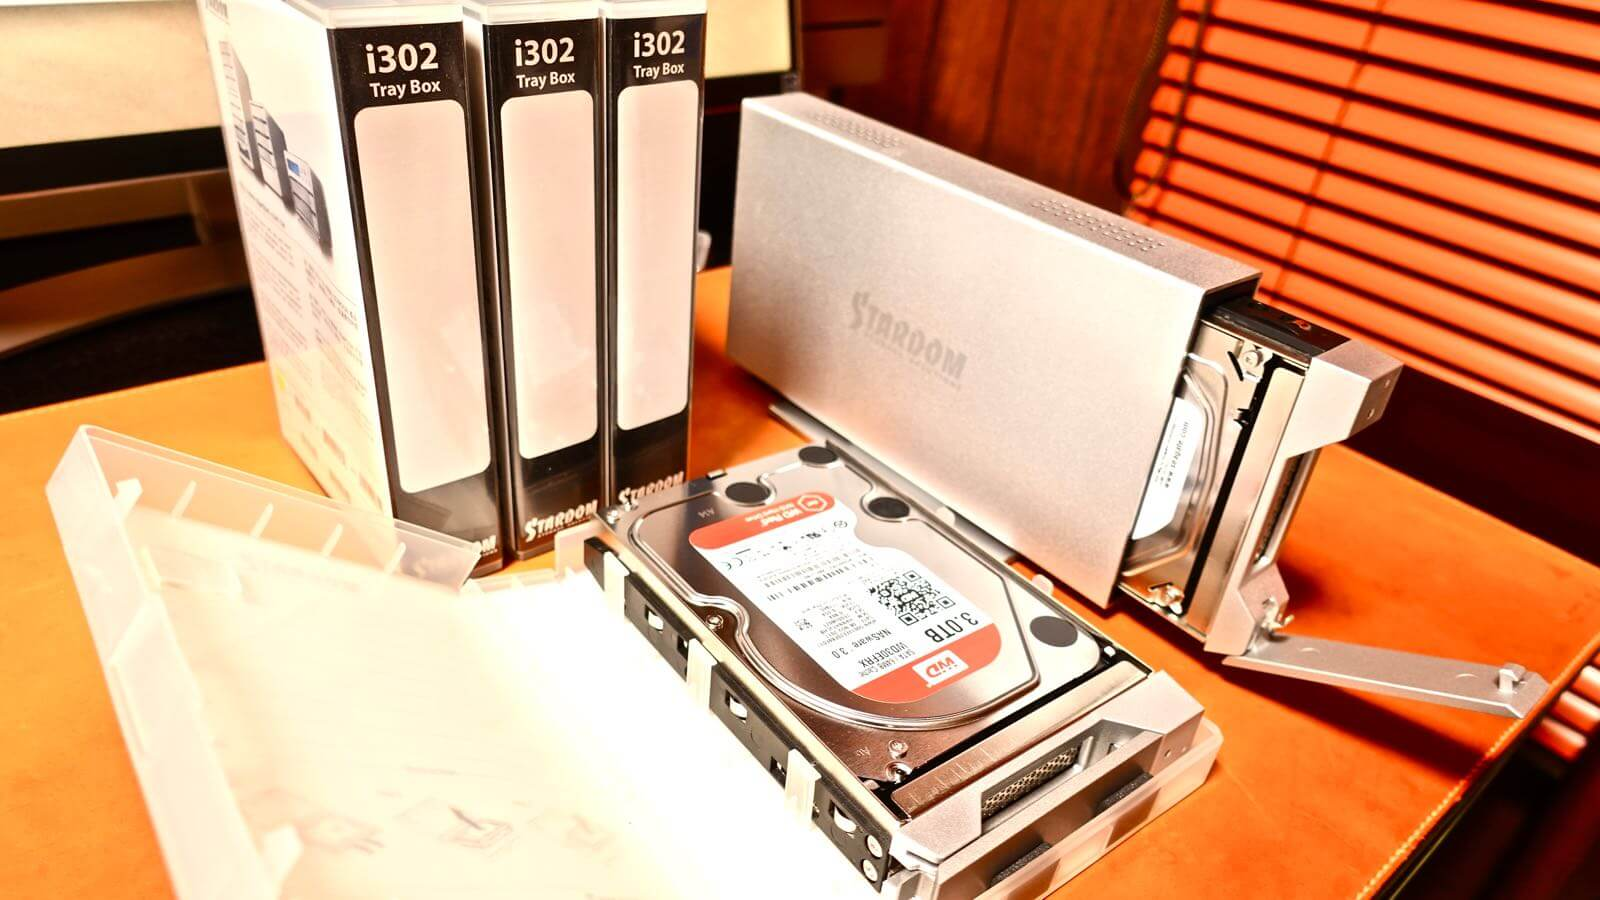 0085 STARDOM iTANK I310 HDD replacement method 16